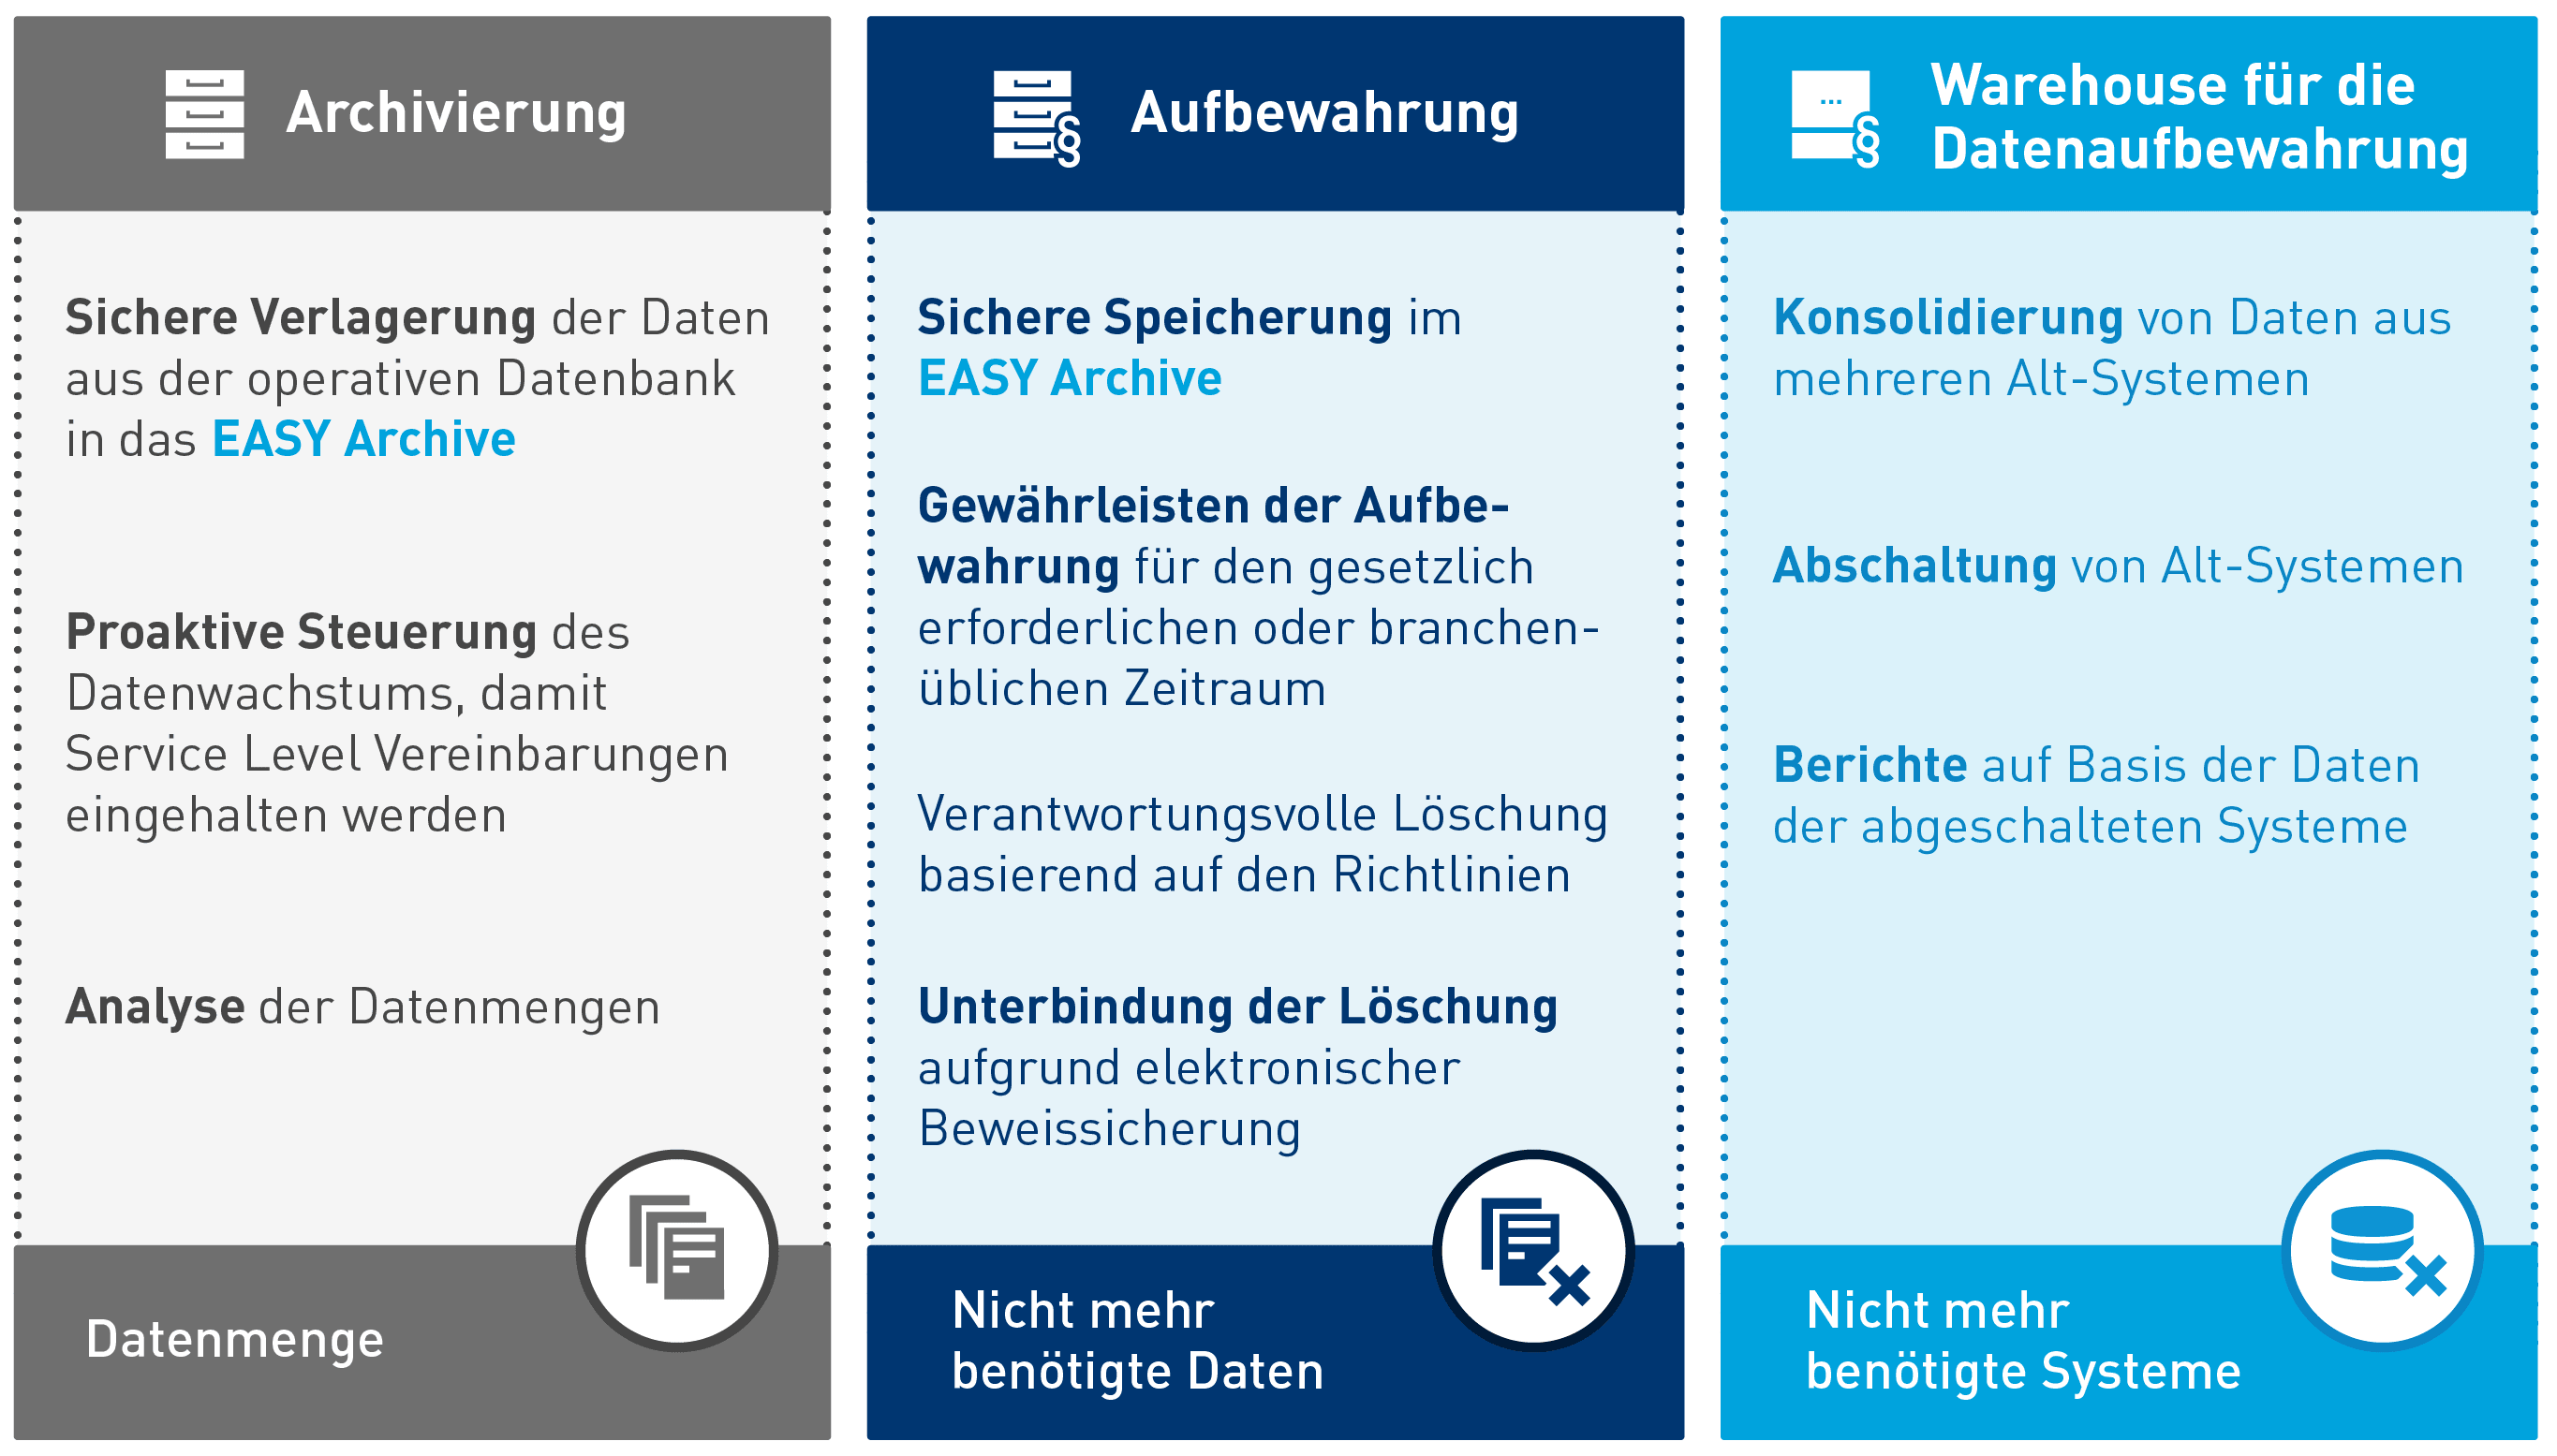 EASY Archive und SAP ILM